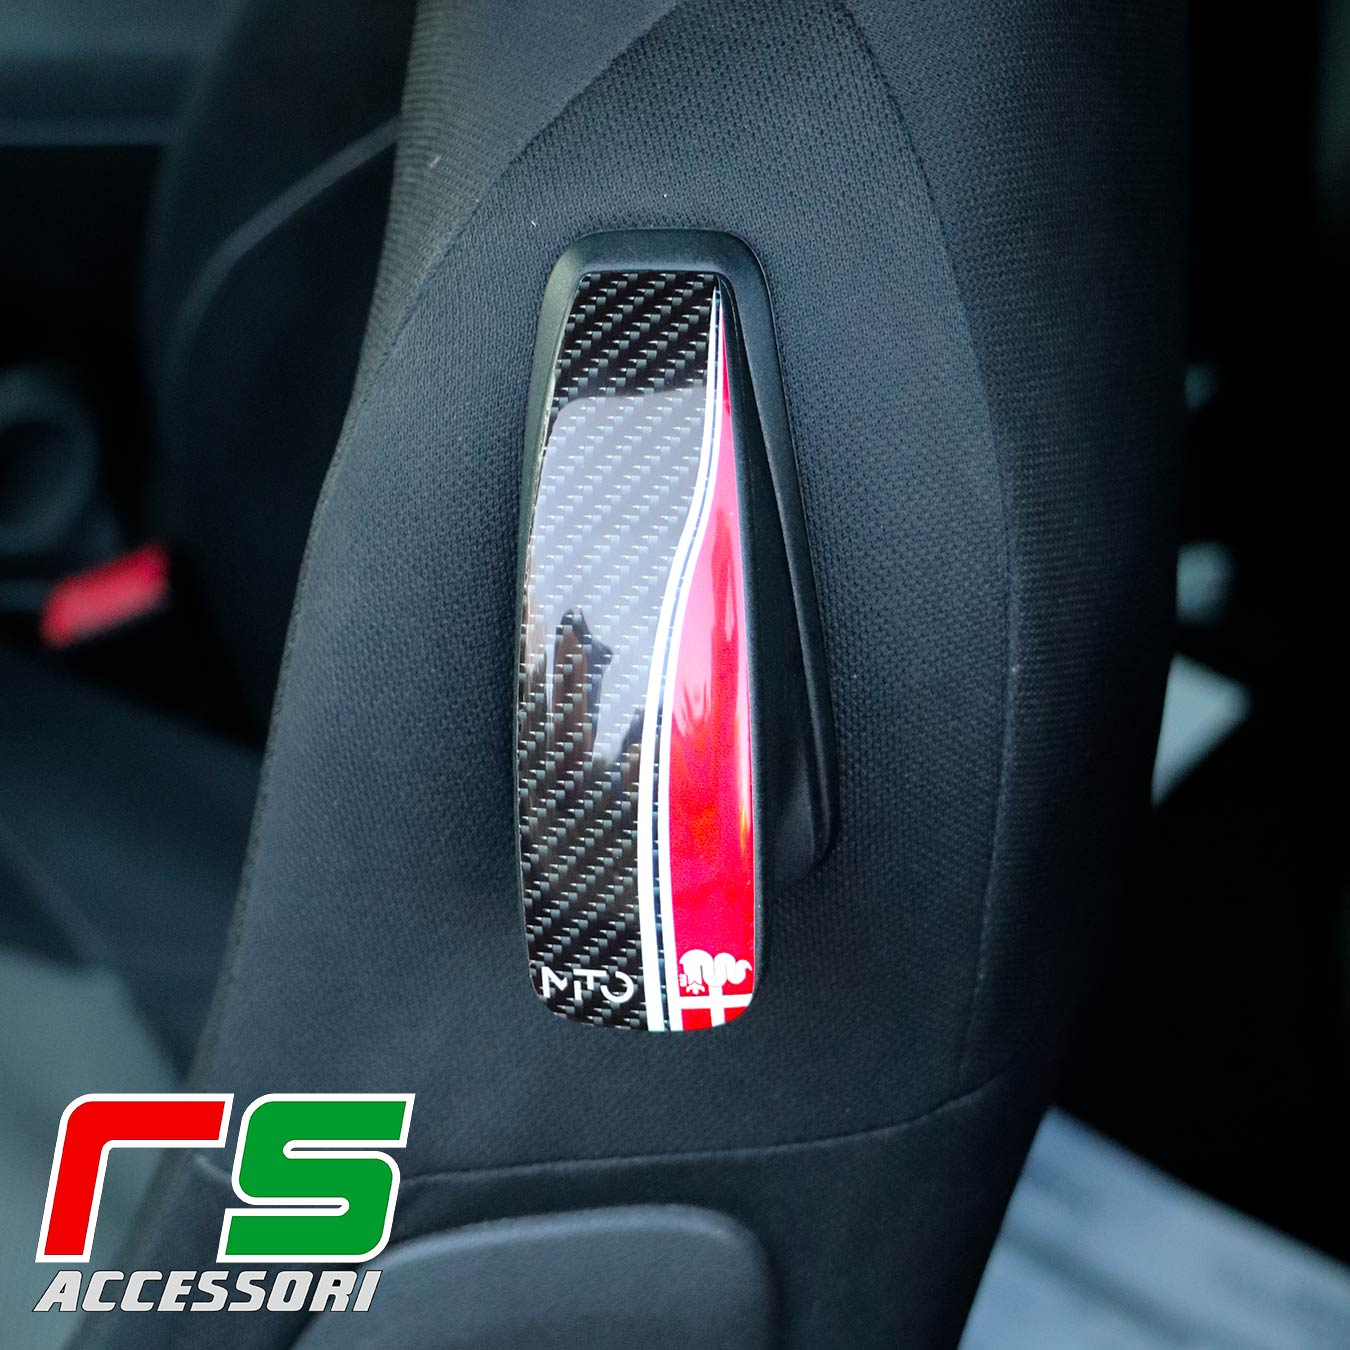 STICKERS resin-coated Alfa Romeo Mito seat tilting lever